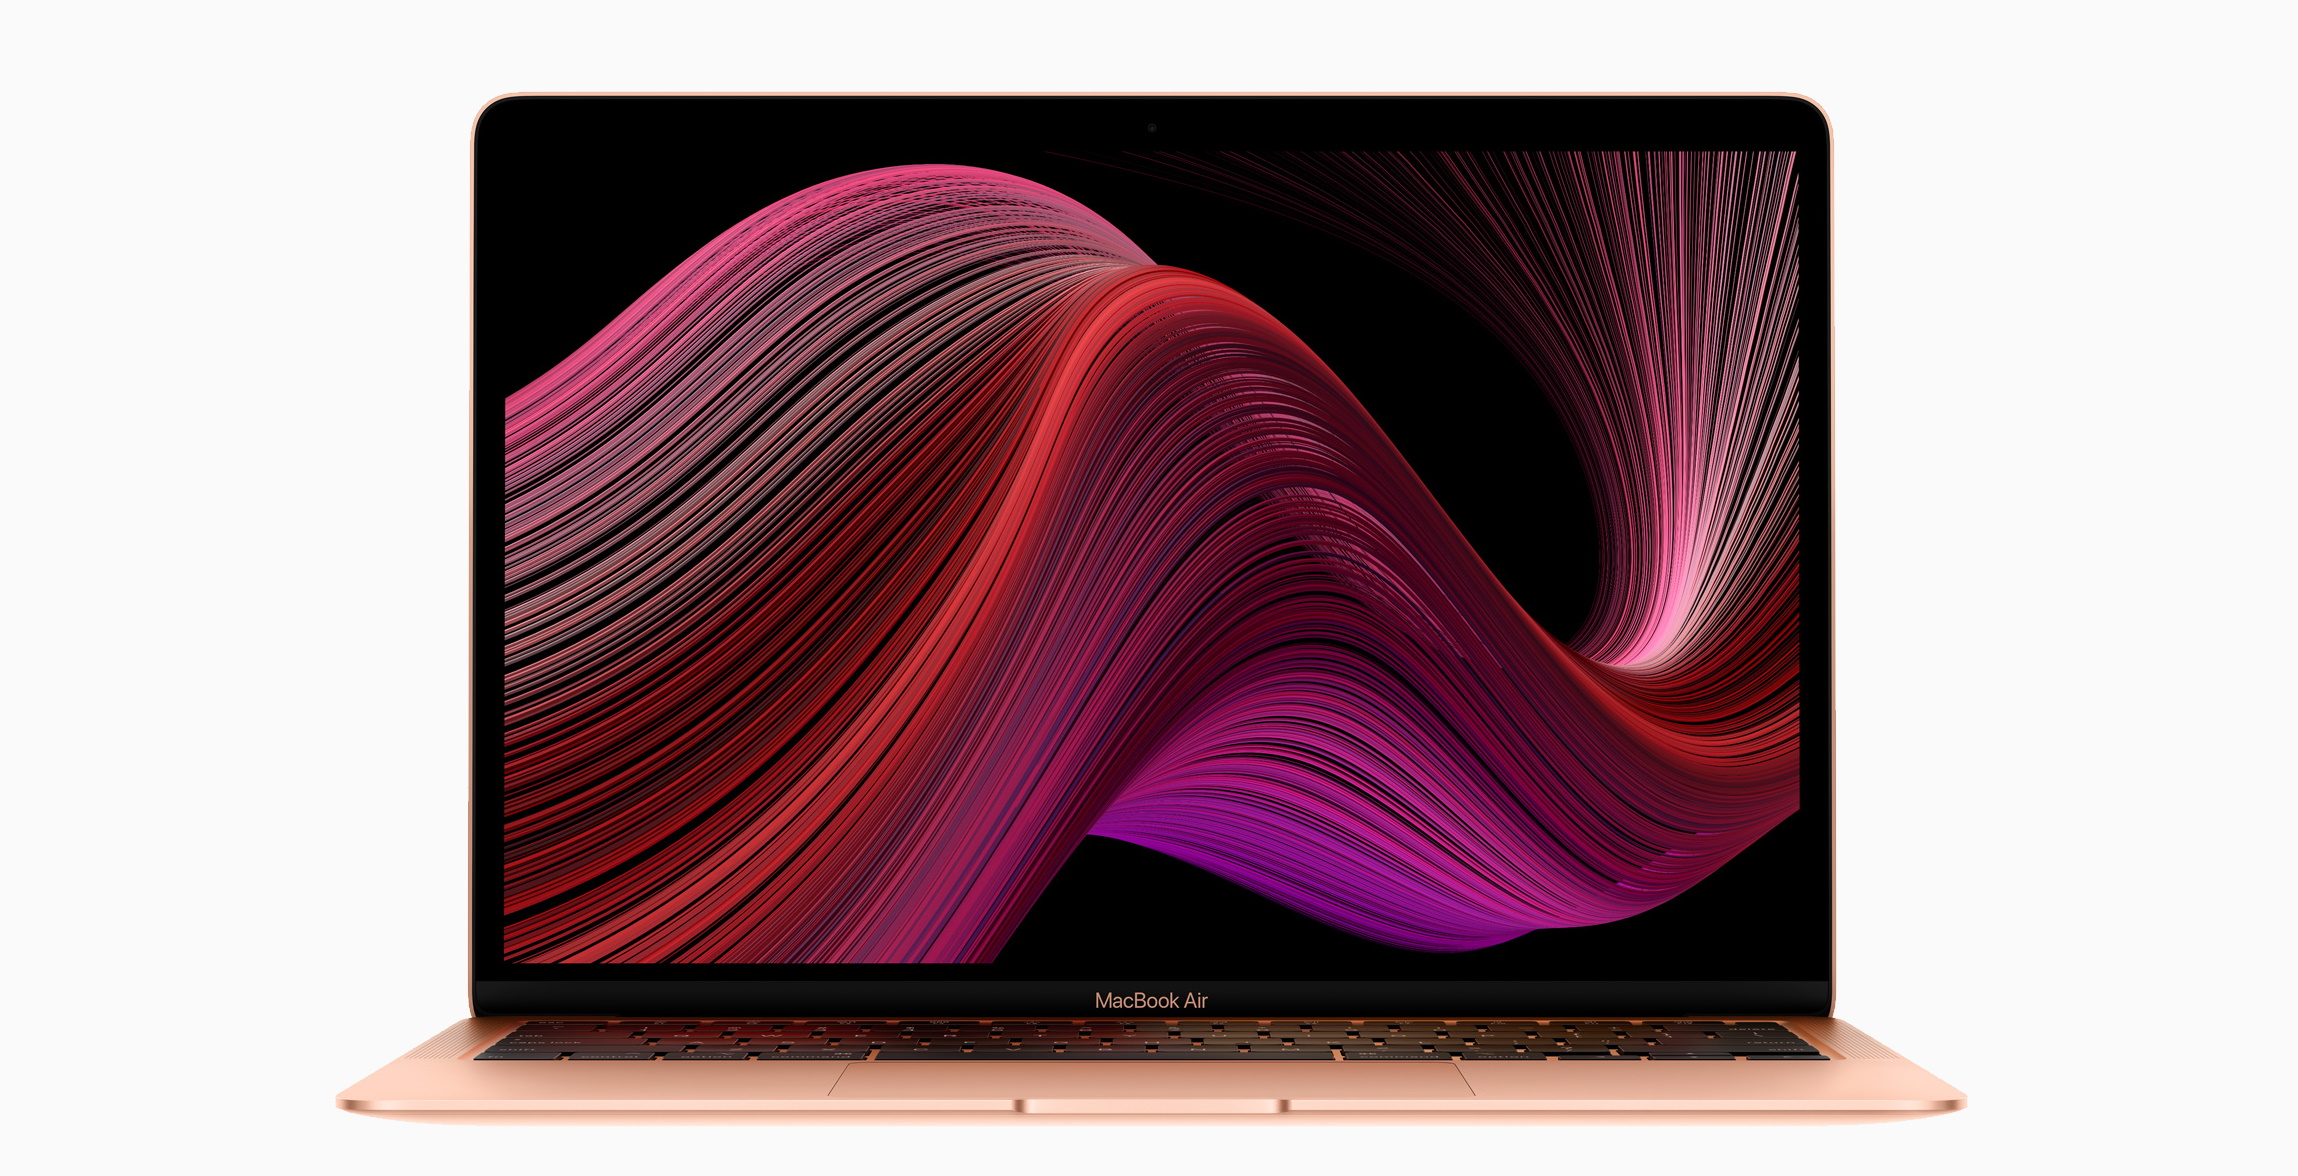 apple-macbook-air-2020-gets-surprise-announcement-and-new-lower-price